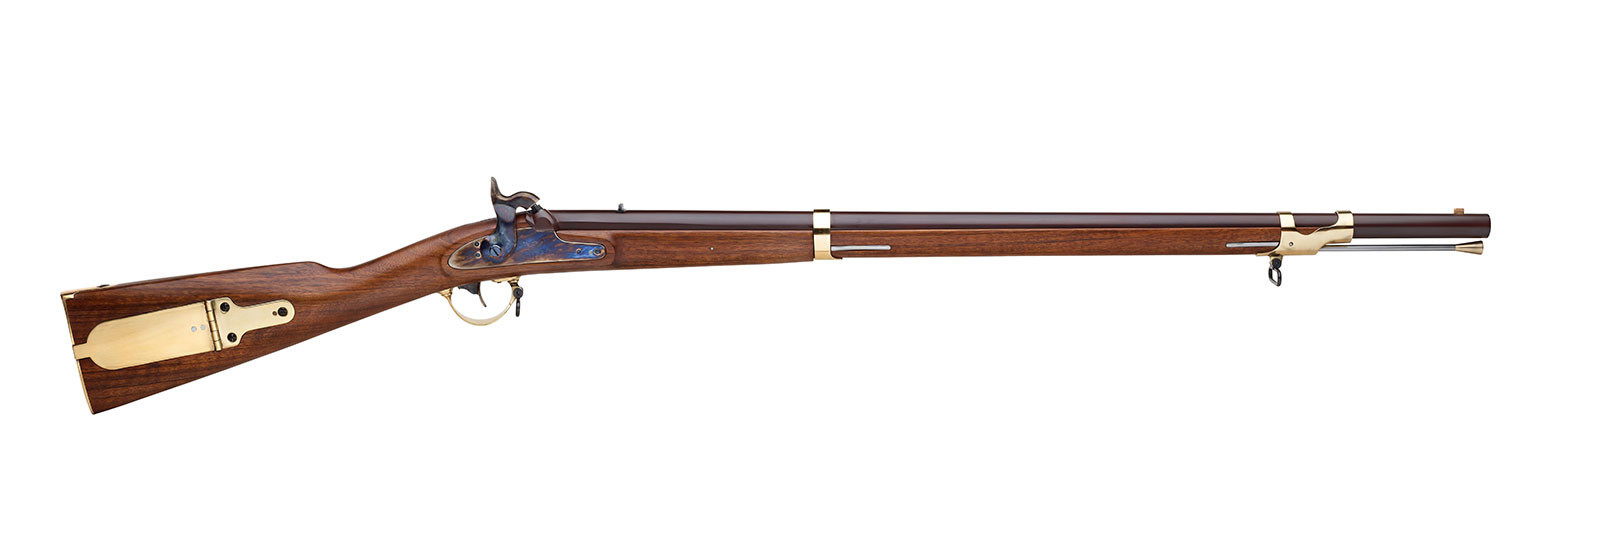 Fucile Mississippi US model 1841